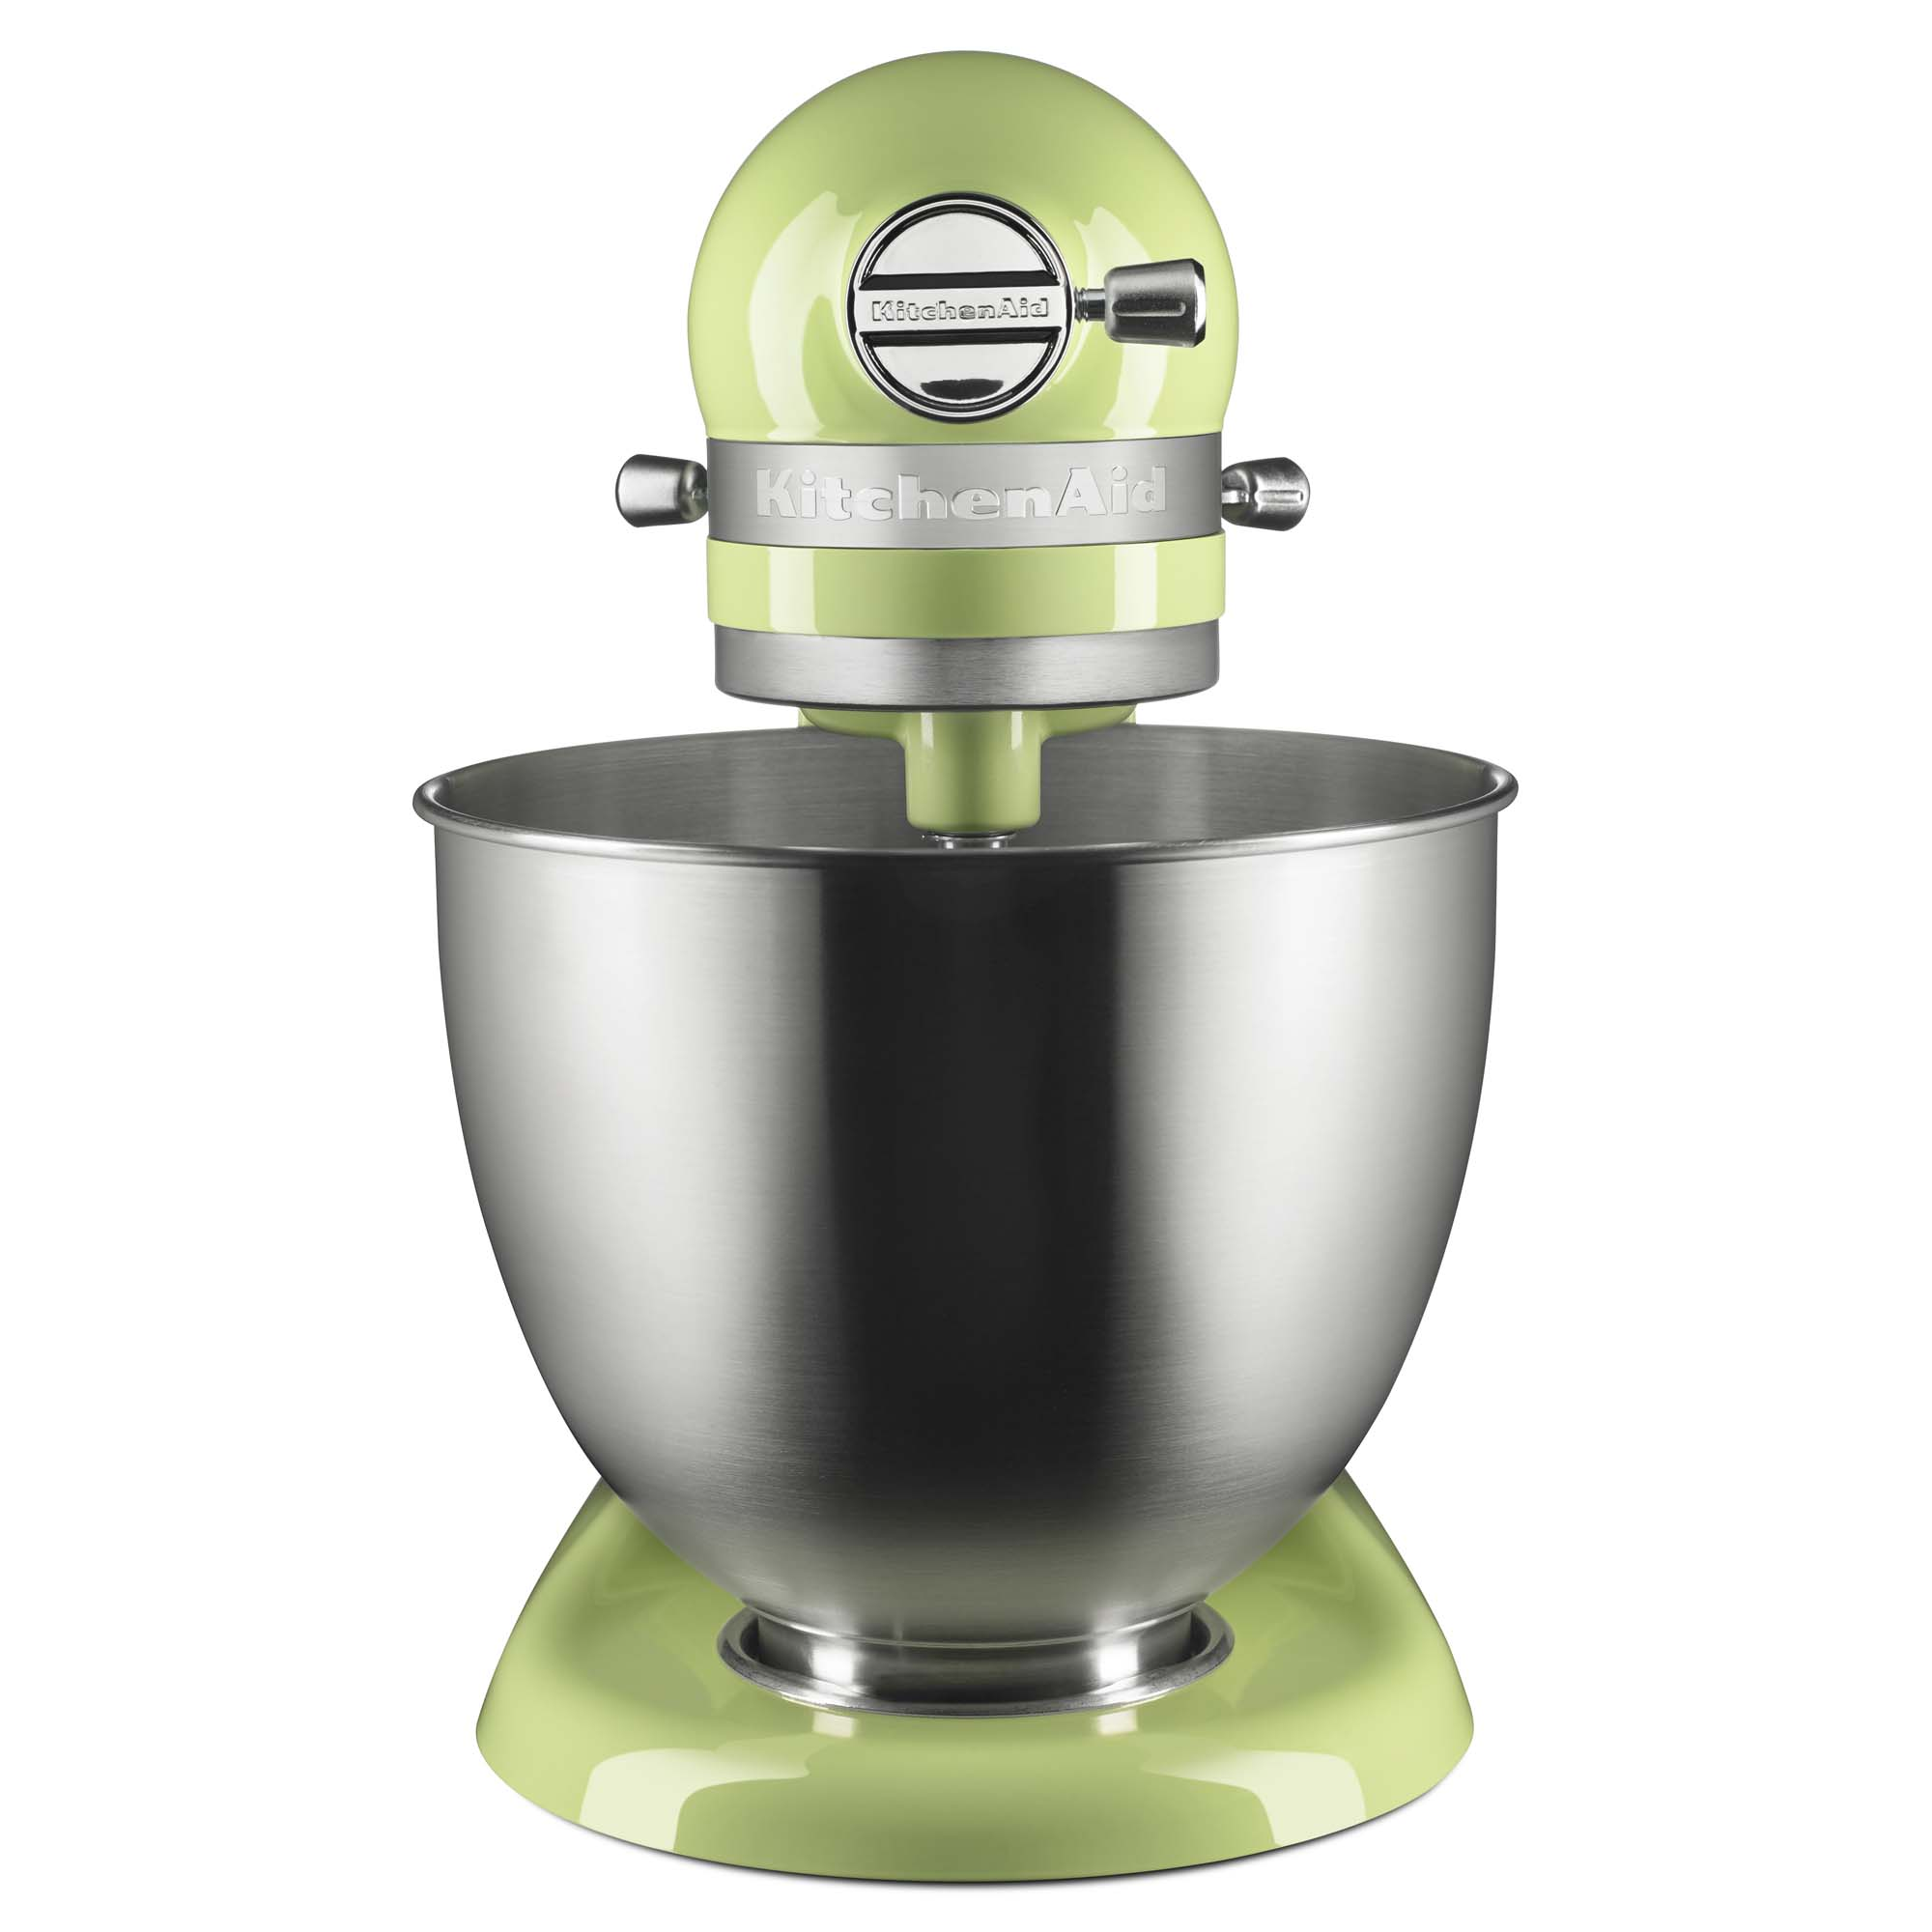 KitchenAid-Refurbished-Artisan-Mini-3-5-Quart-Tilt-Head-Stand-Mixer-RKSM33XX thumbnail 17